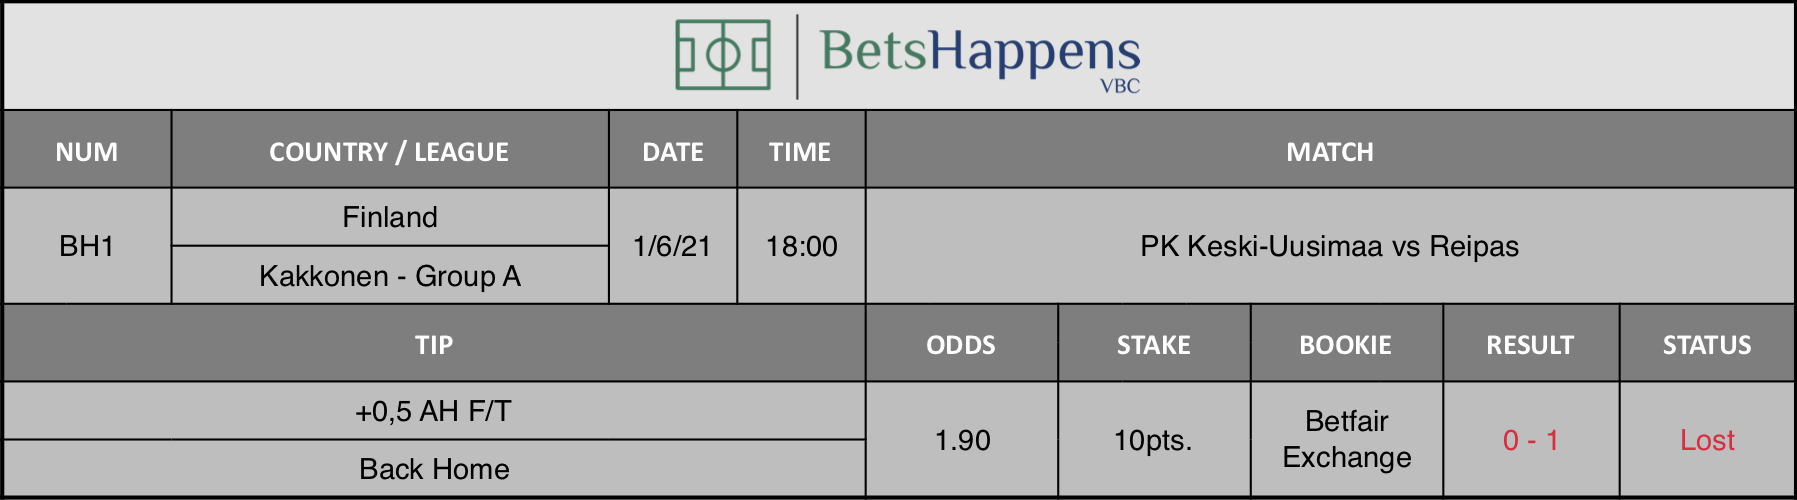 Results of our tip for the PK Keski-Uusimaa vs Reipas where +0,5 AH F/T Back Home is recommended.